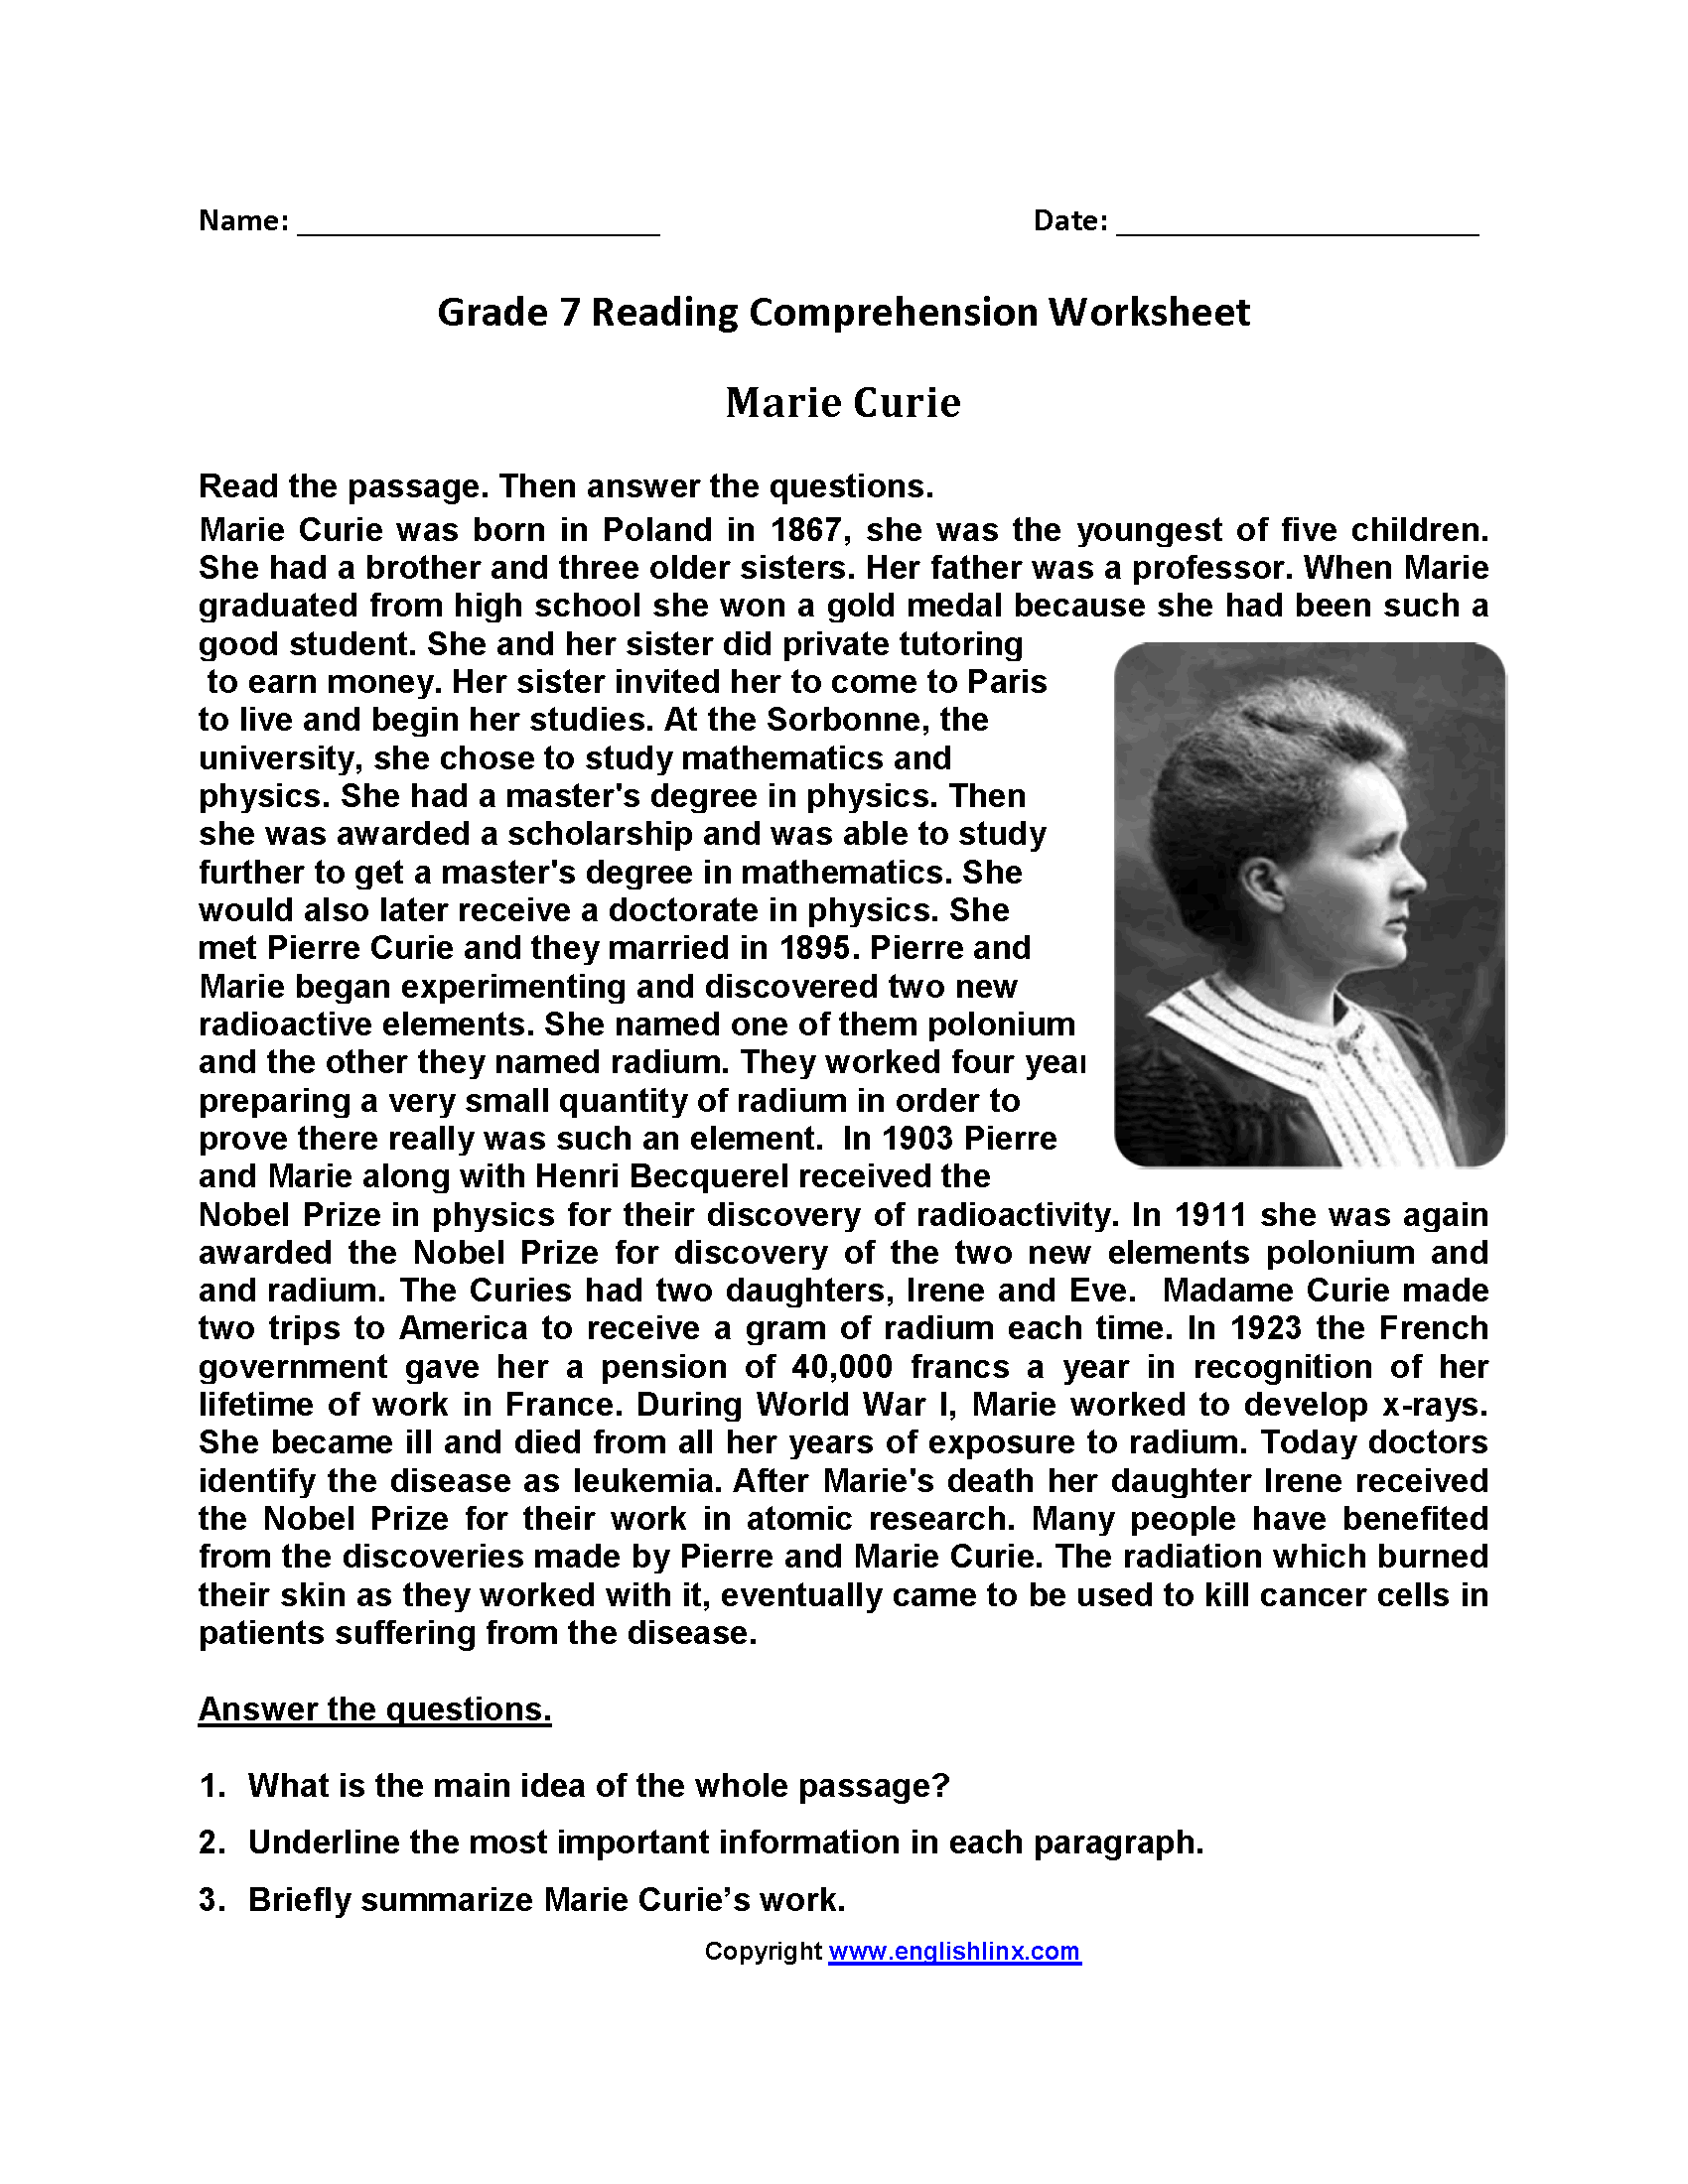 Marie Curie Seventh Grade Reading Worksheets